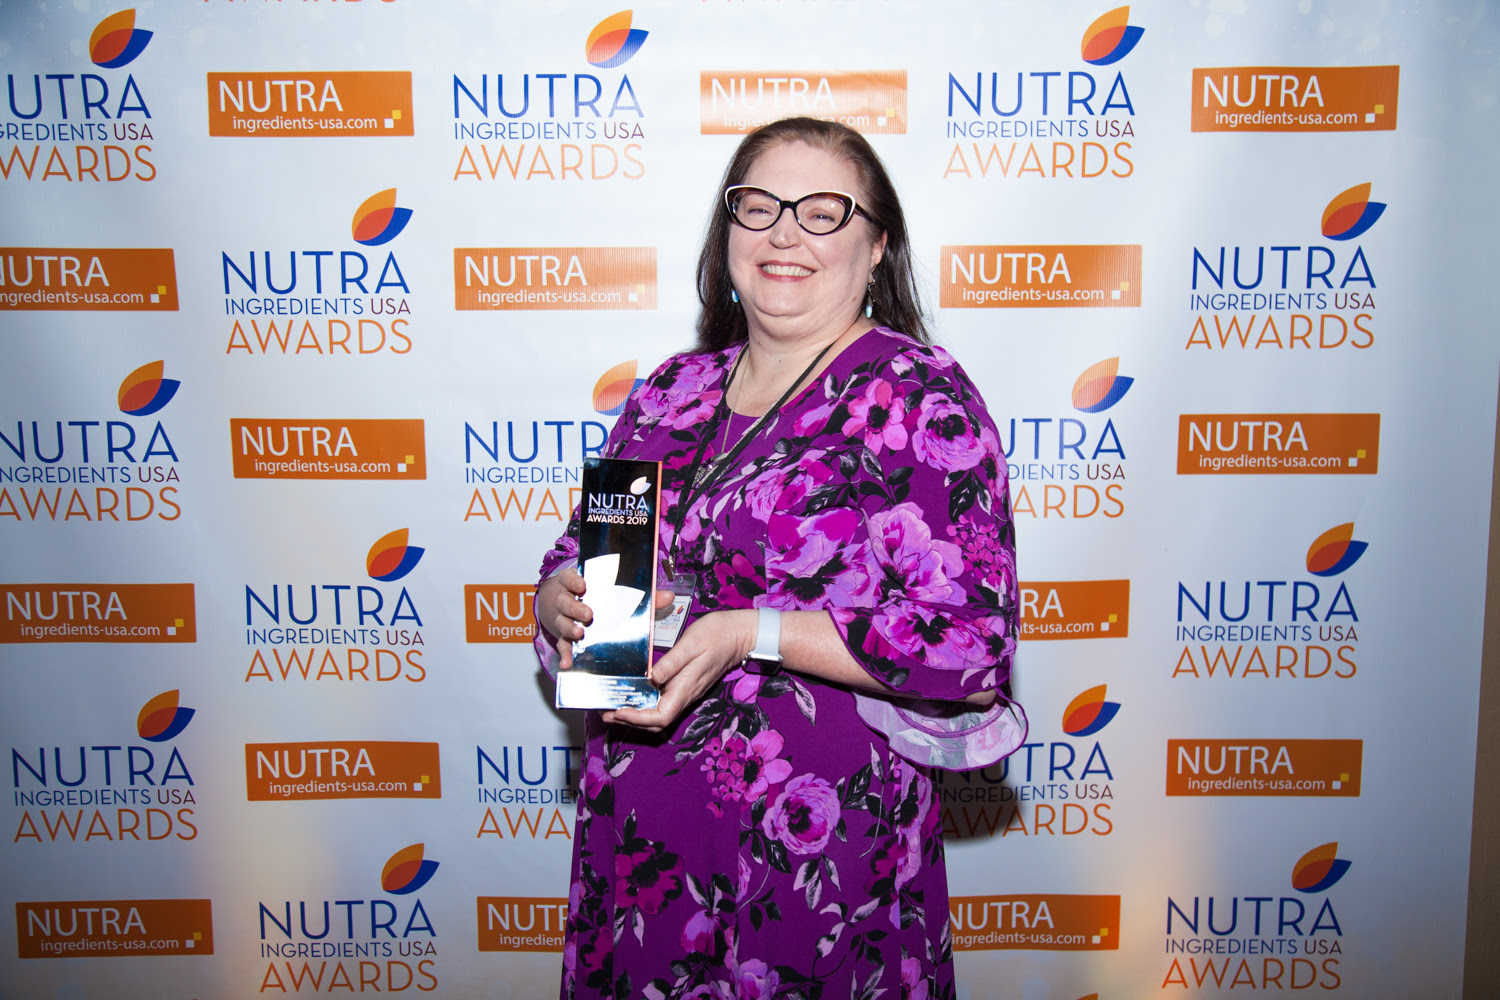 NutraIngredients Award 2019